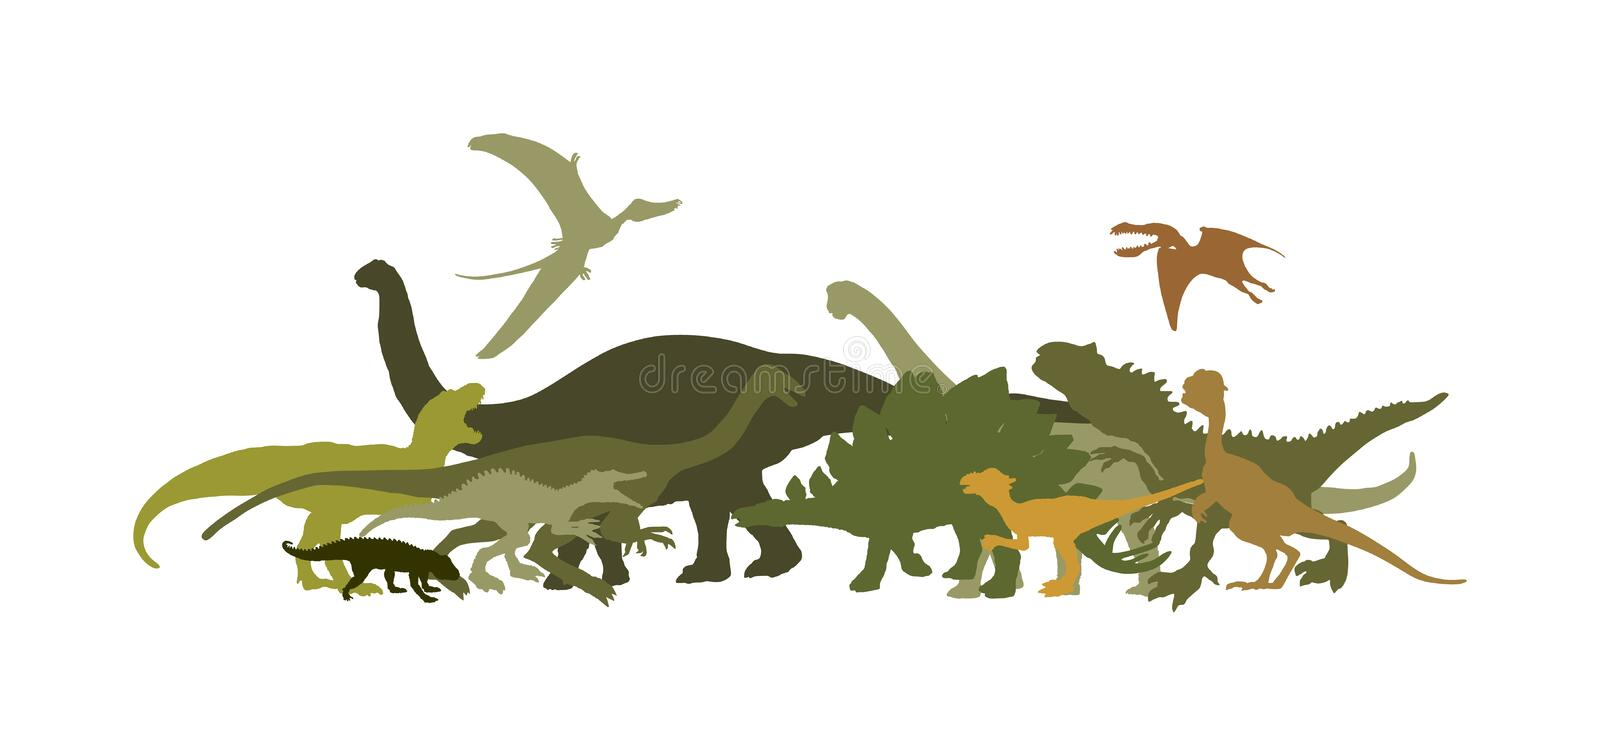 E r r o dino vector illustratie